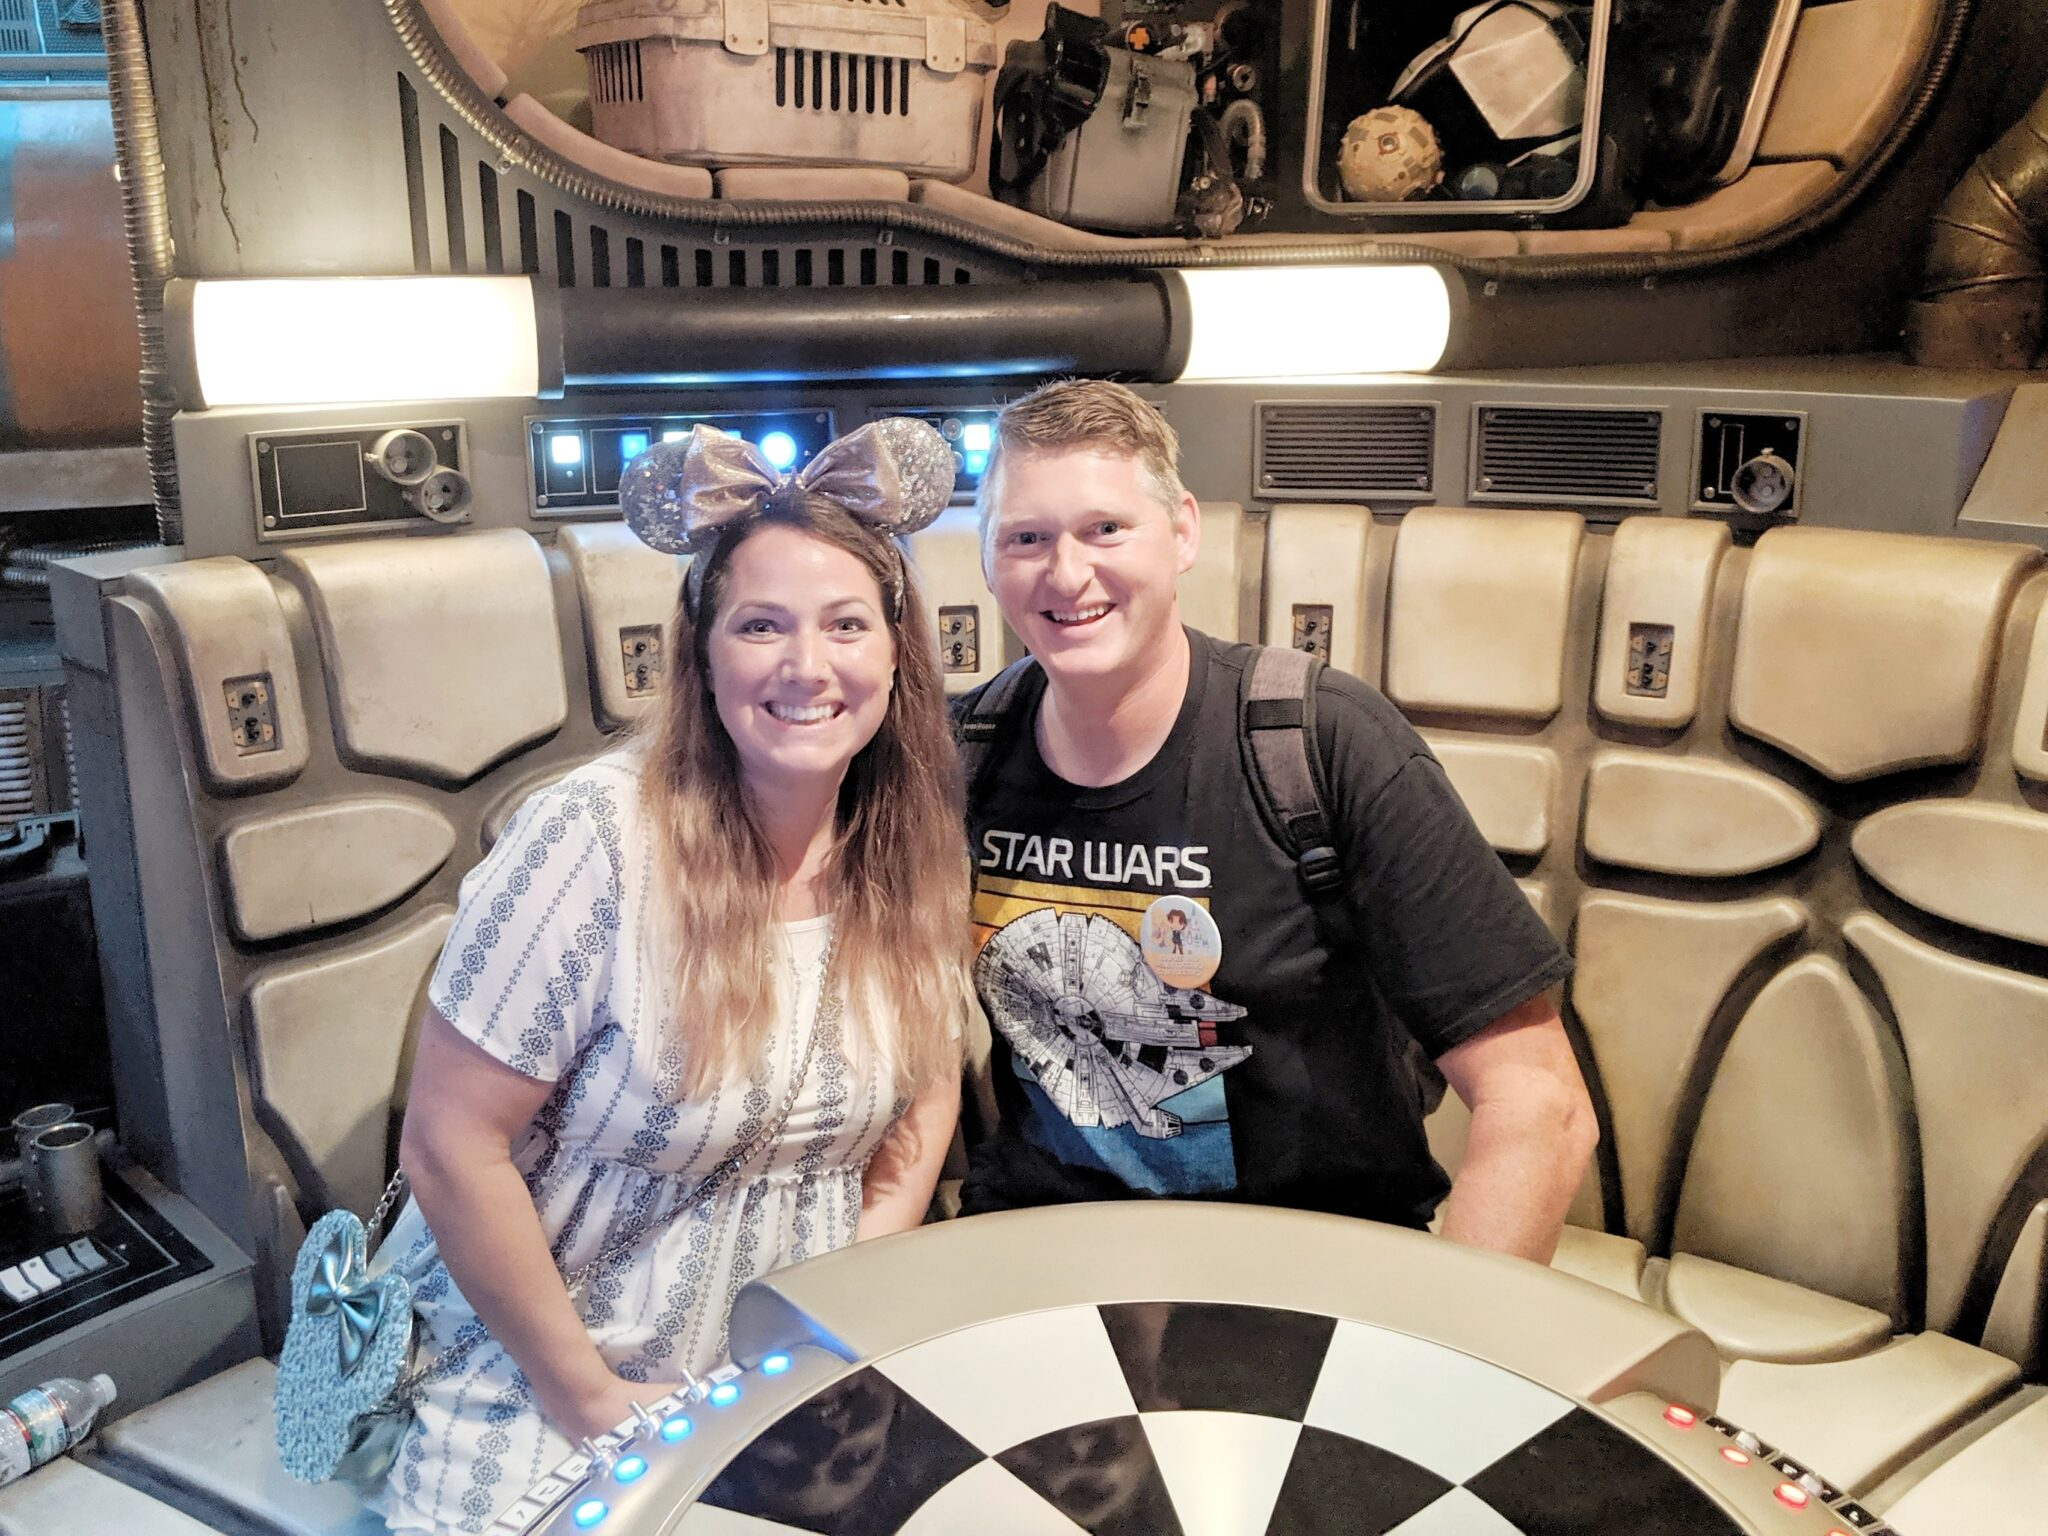 Best Spots for Photos at Walt Disney World All Things with Purpose Sarah Lemp 7